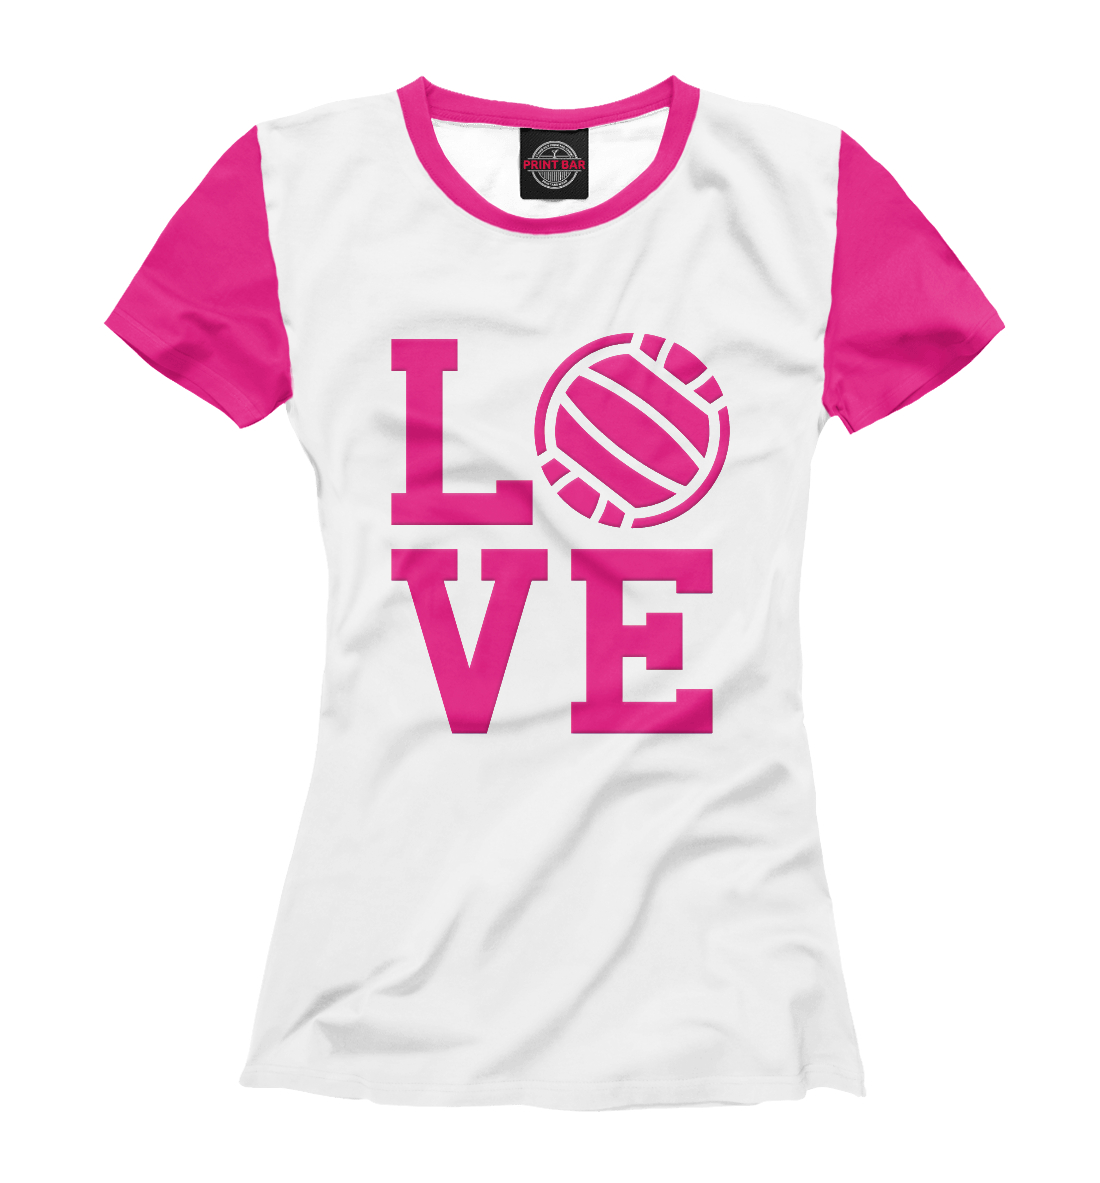 Купить I love volleyball, Printbar, Футболки, VLB-939345-fut-1